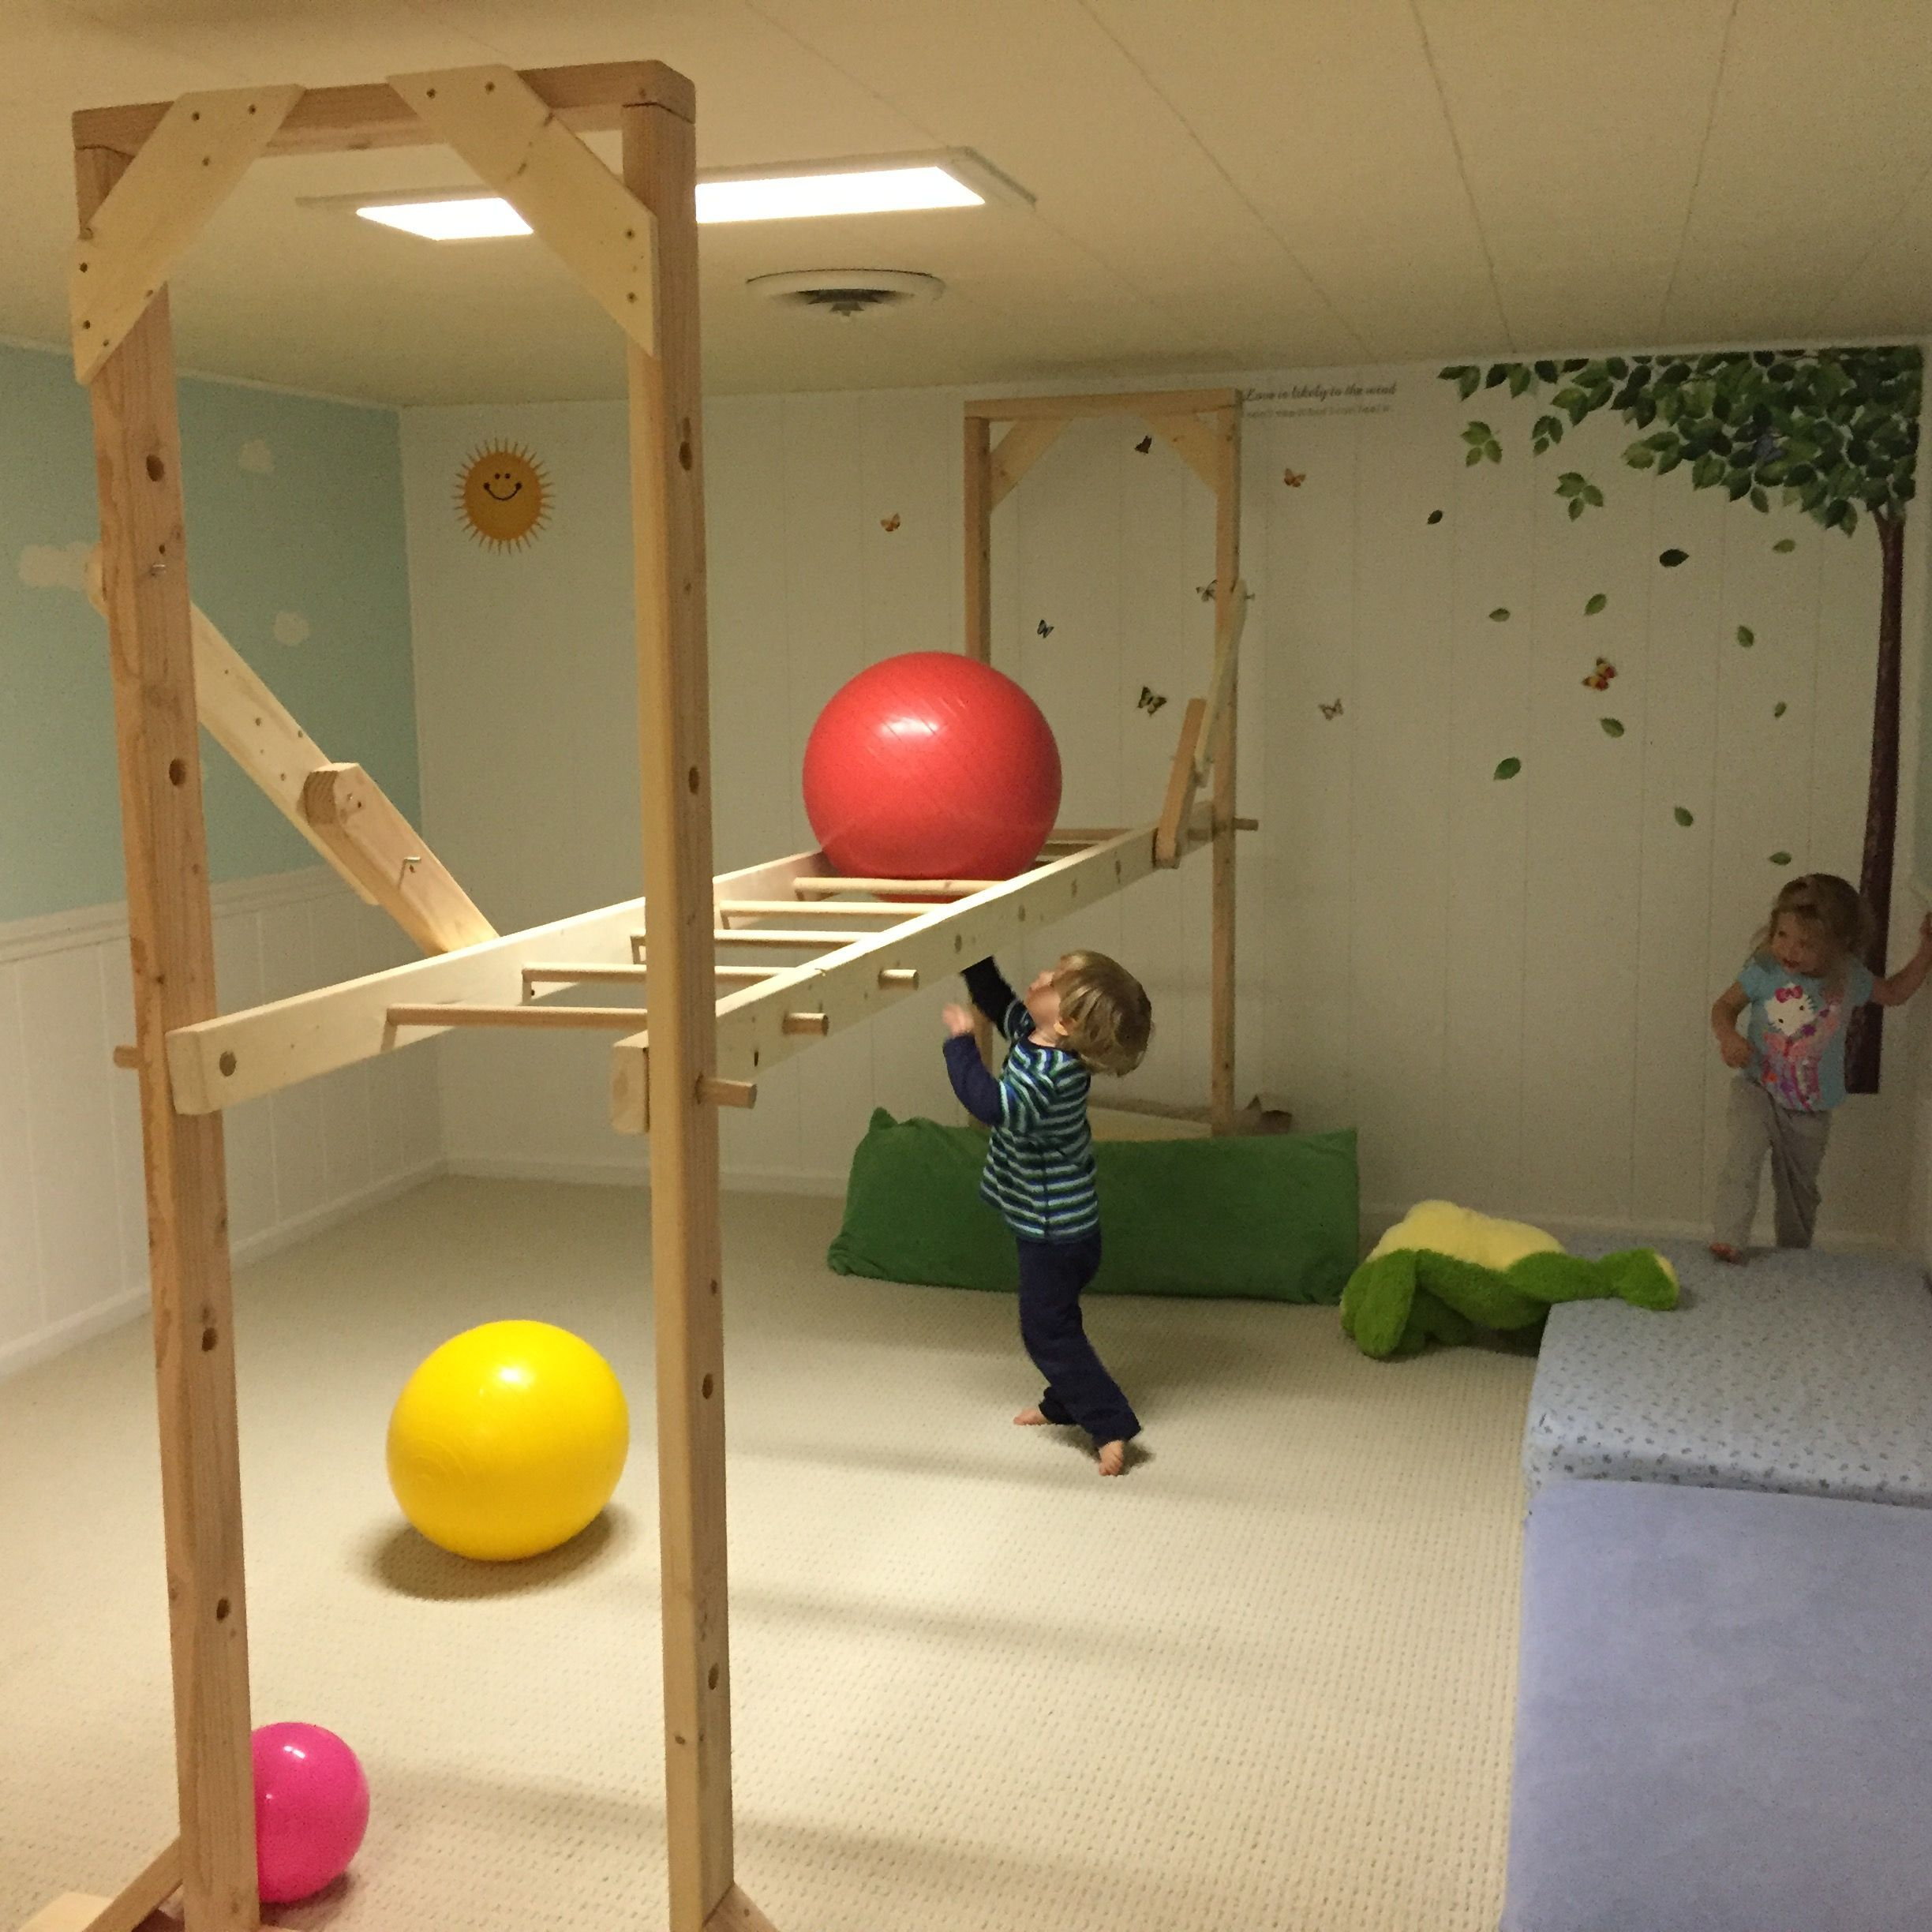 Full Size of Klettergerüst Indoor Diy Basement Monkey Bars Just In Time To Keep The Kids Active This Garten Wohnzimmer Klettergerüst Indoor Diy